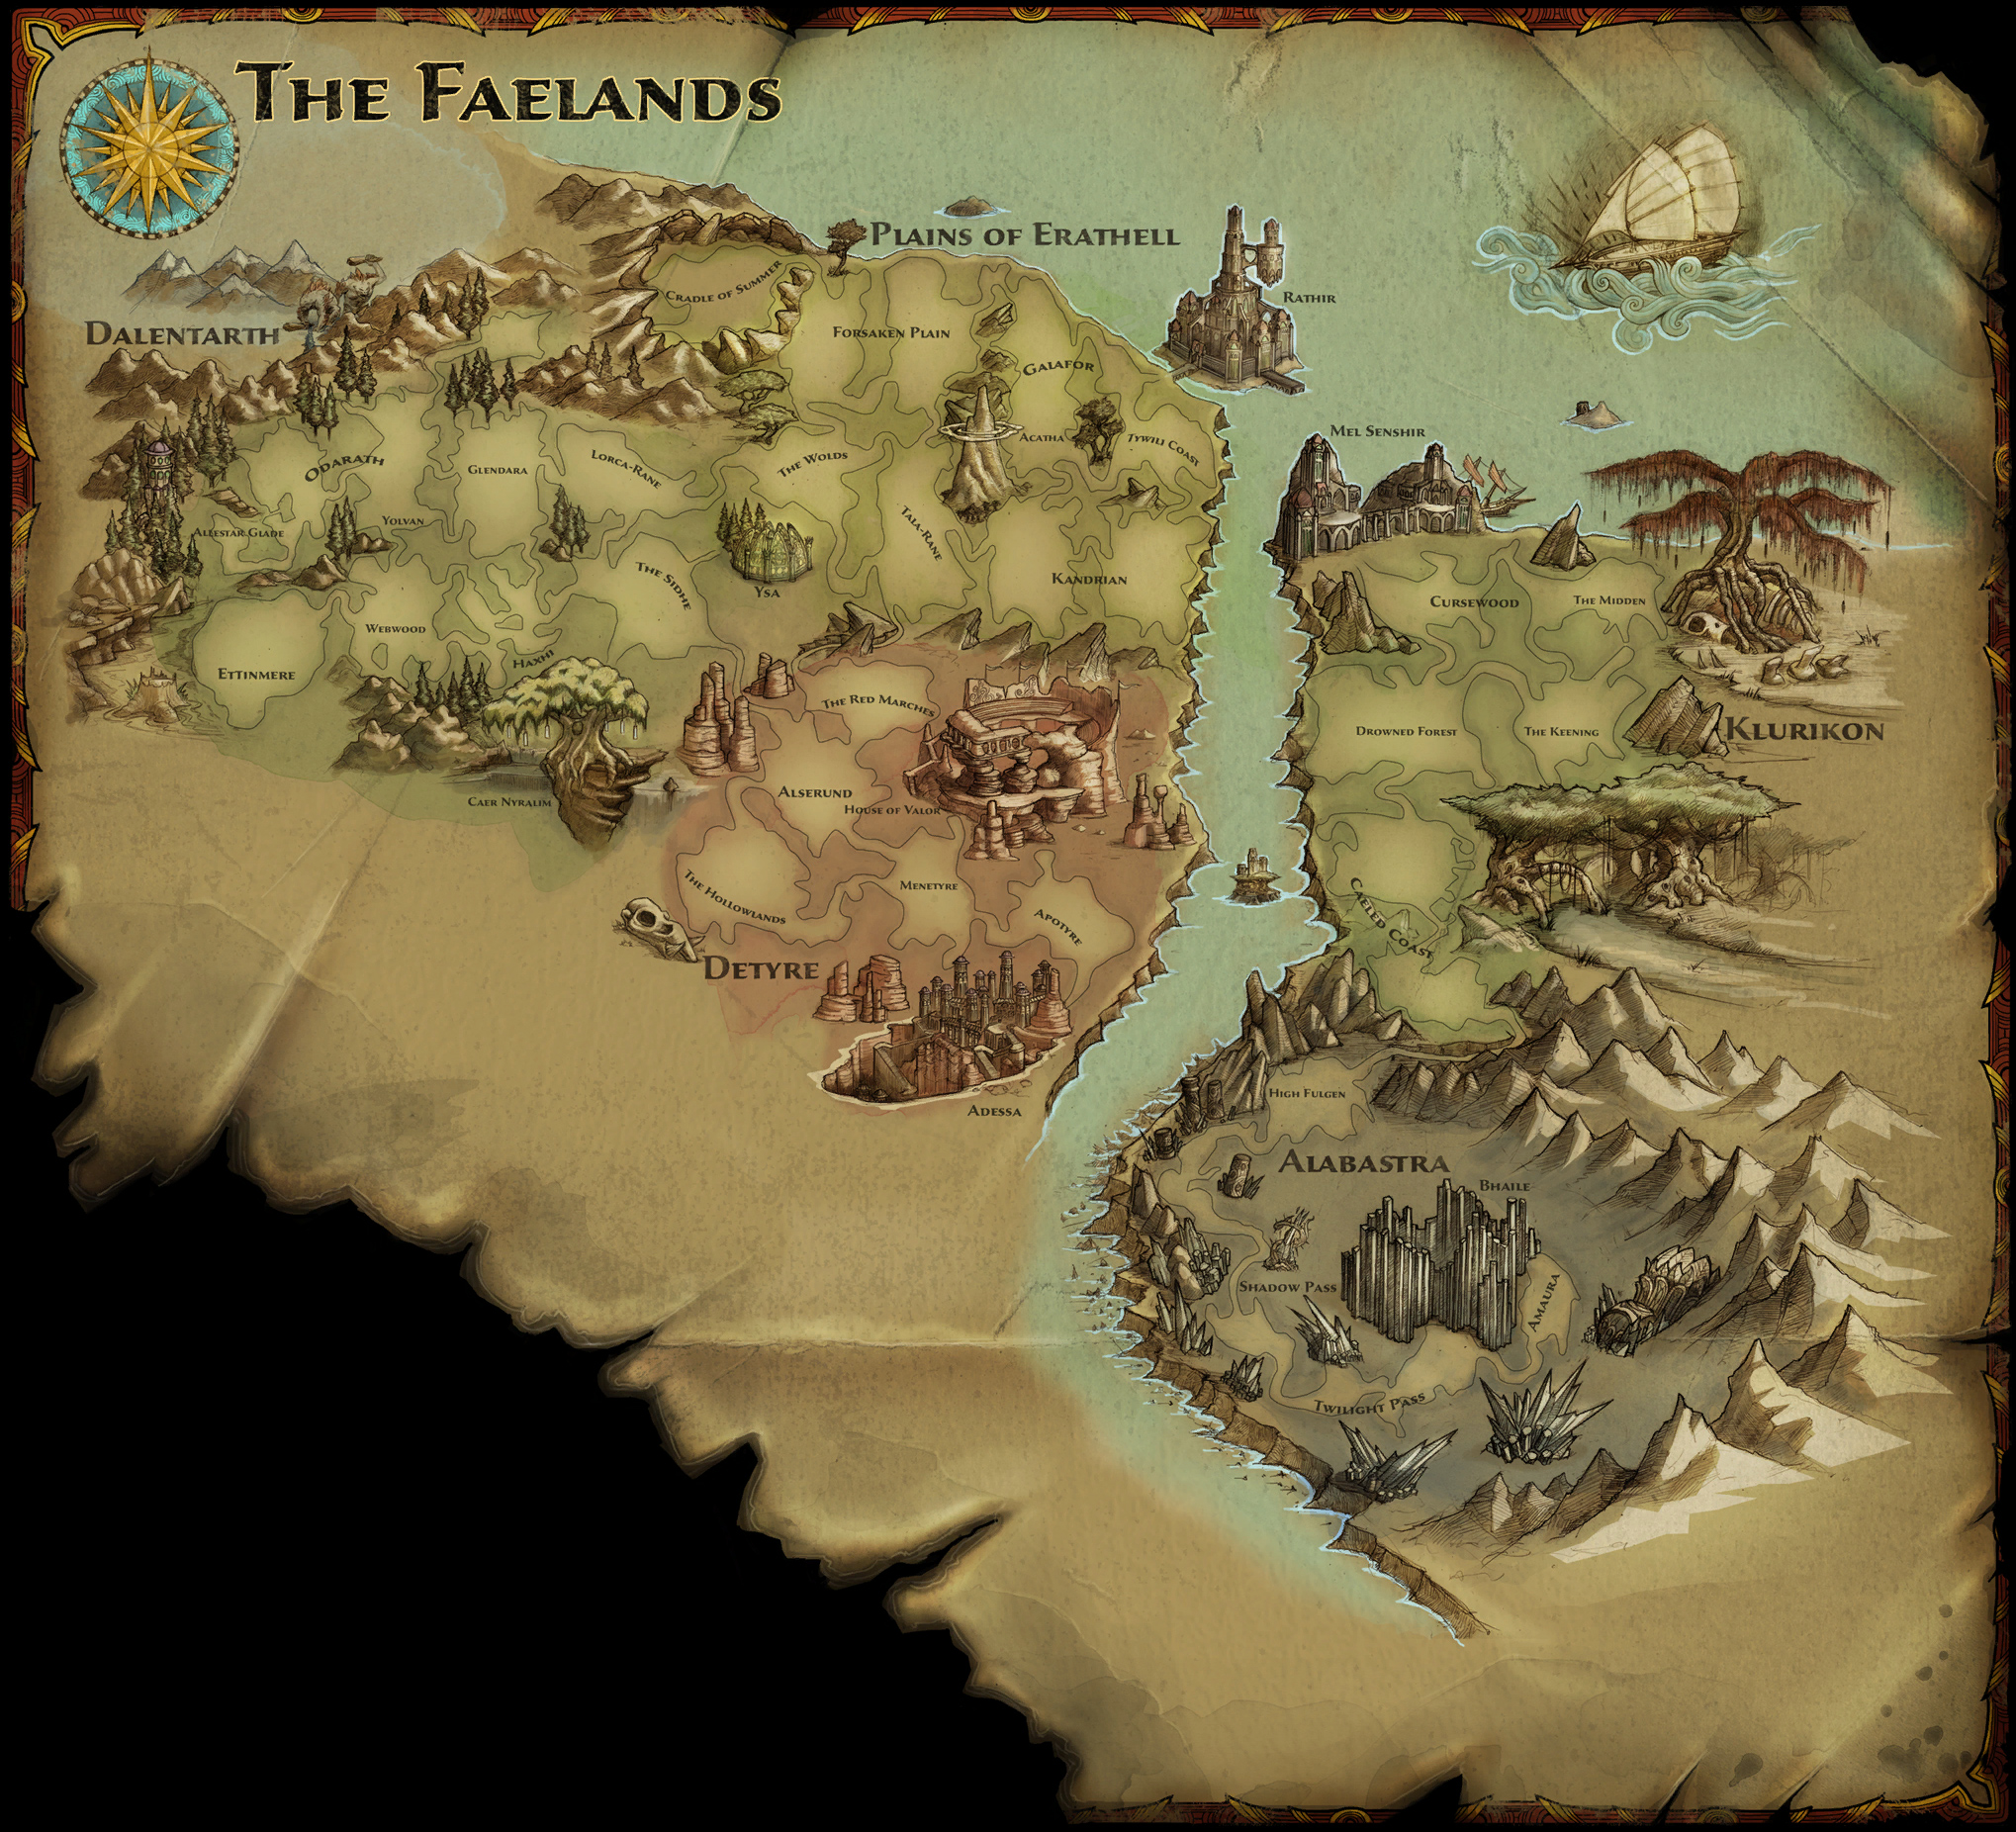 The Faelands | Amalur Wiki | FANDOM powered by Wikia on the gardens of ysa amalur map, league of legends detailed map, silent hill detailed map, reckoning map, world map, resident evil detailed map, borderlands detailed map, kingdom of amalur level map, amalur sun camp map, runescape detailed map, lord of the rings detailed map,